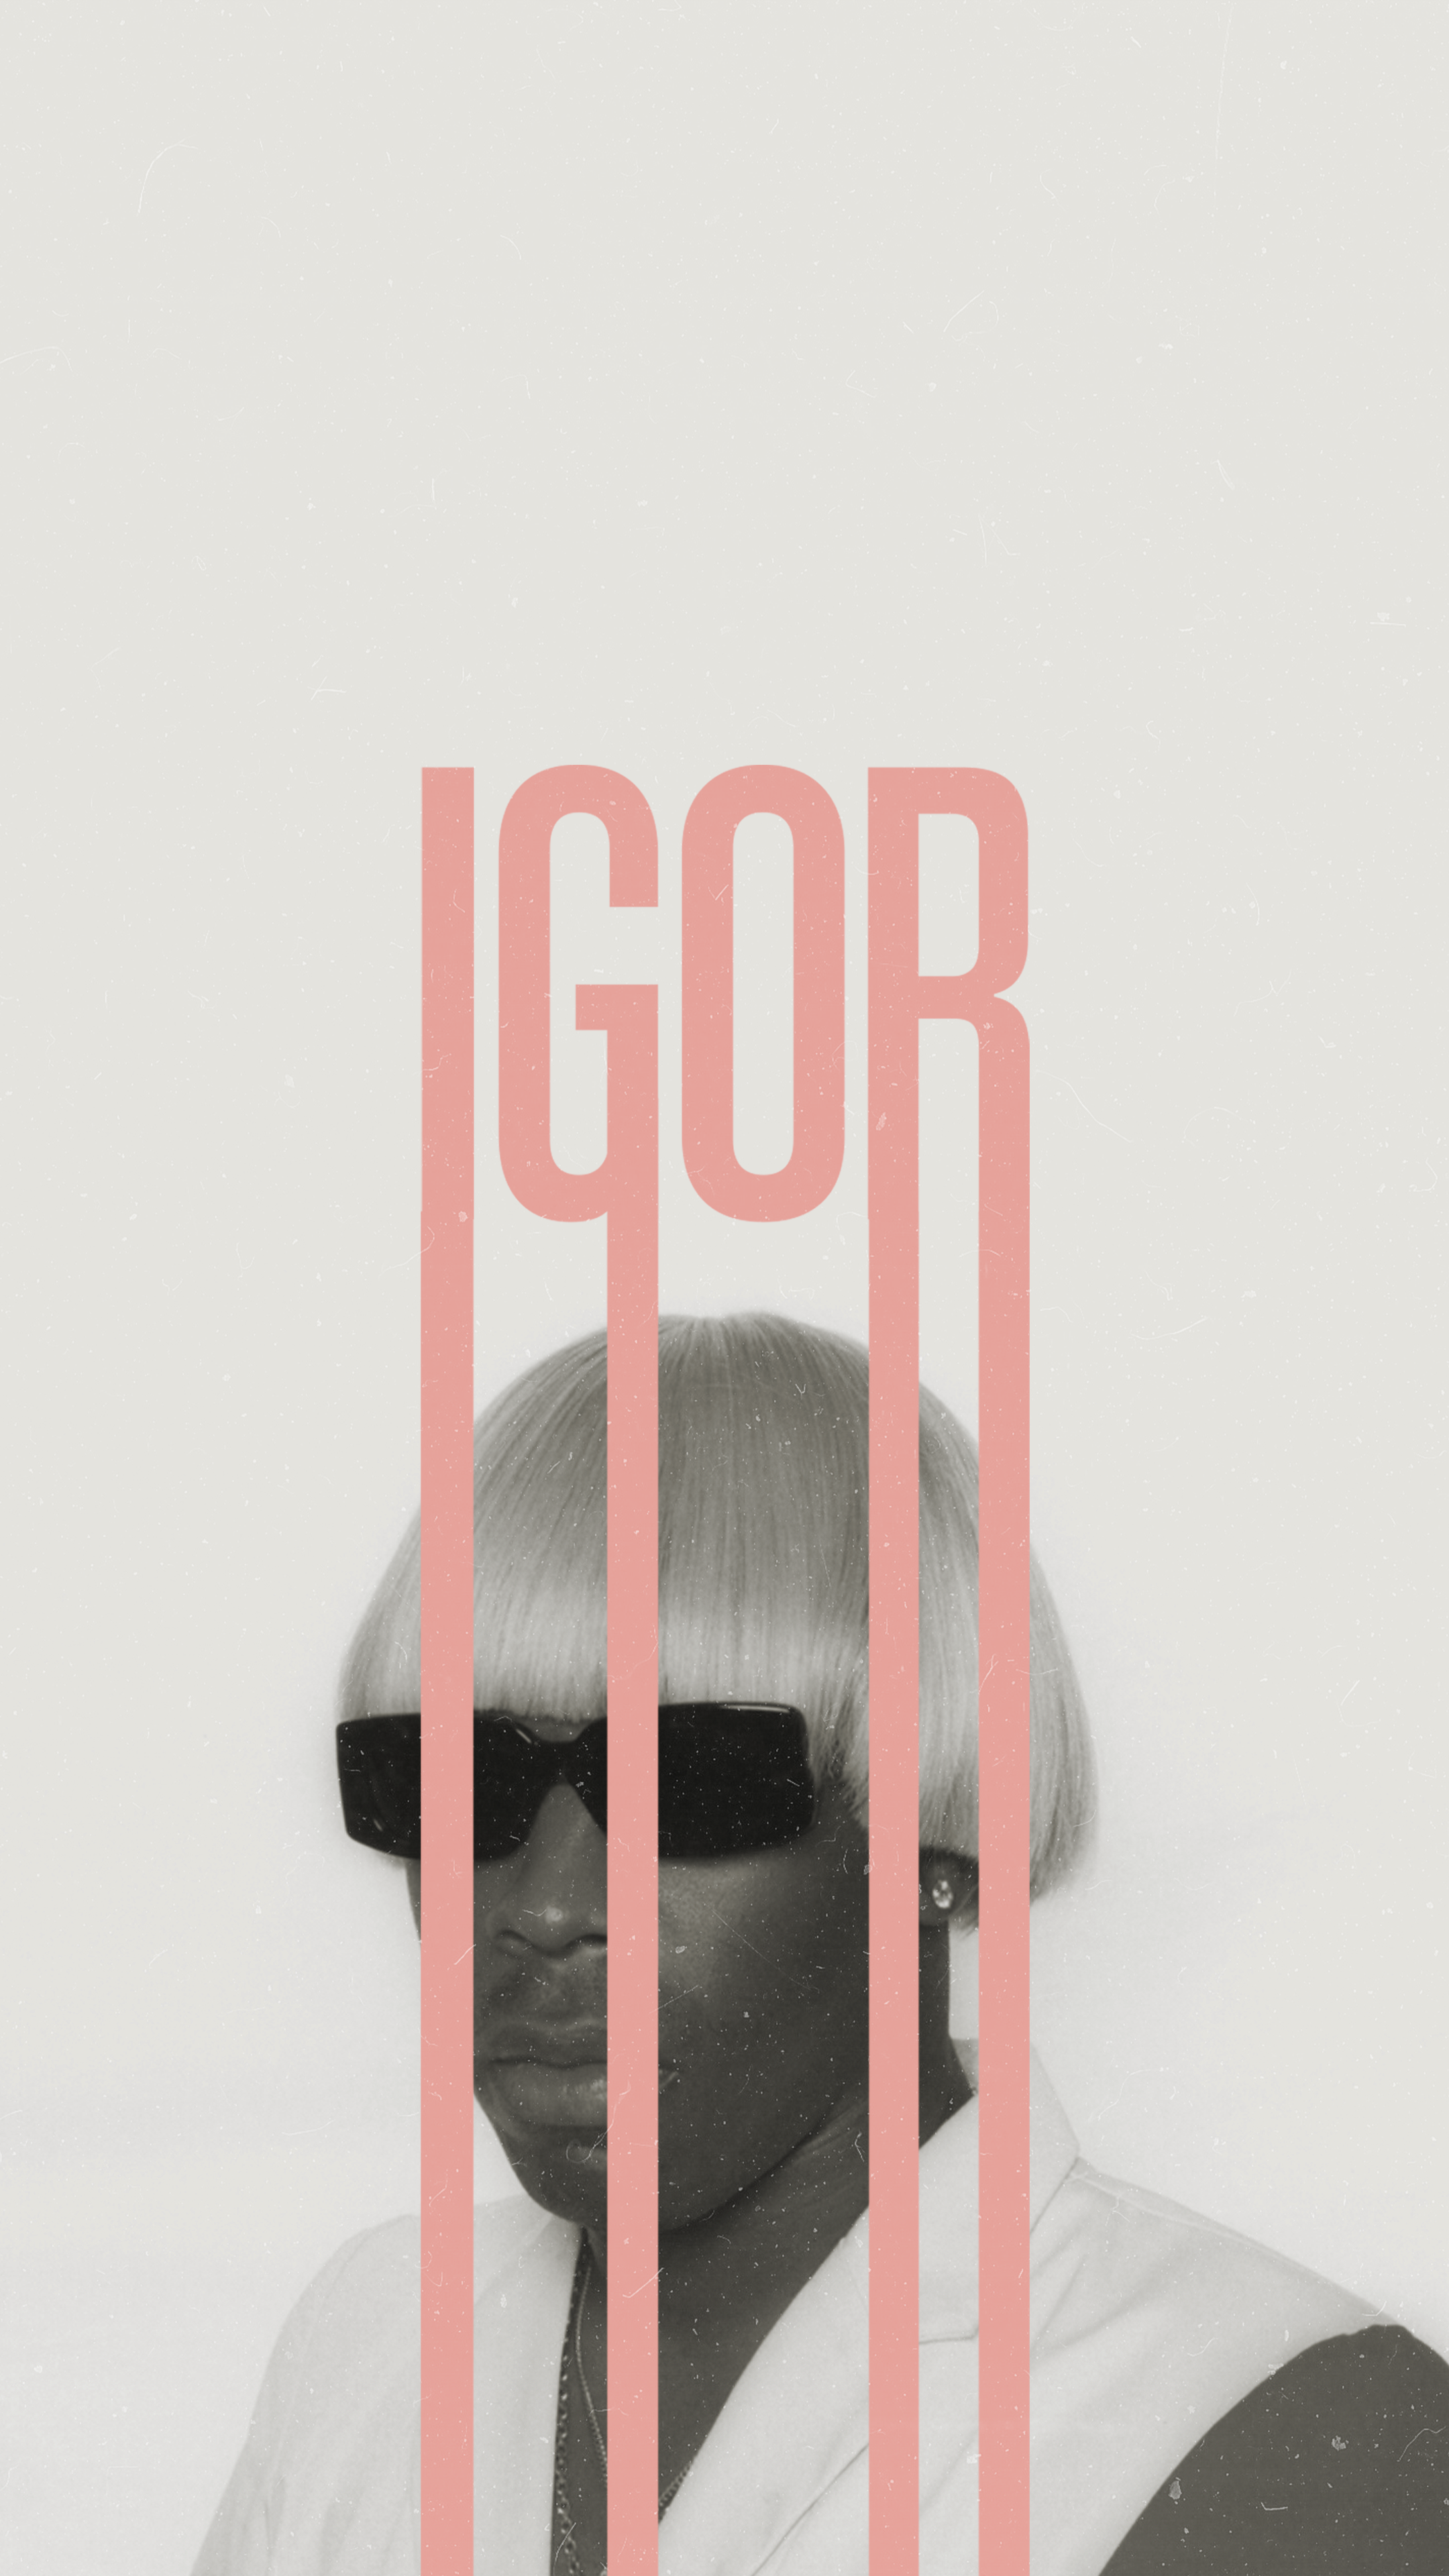 Igor Wallpaper Tyler The Creator Wallpaper Tyler The Creator Picture Collage Wall